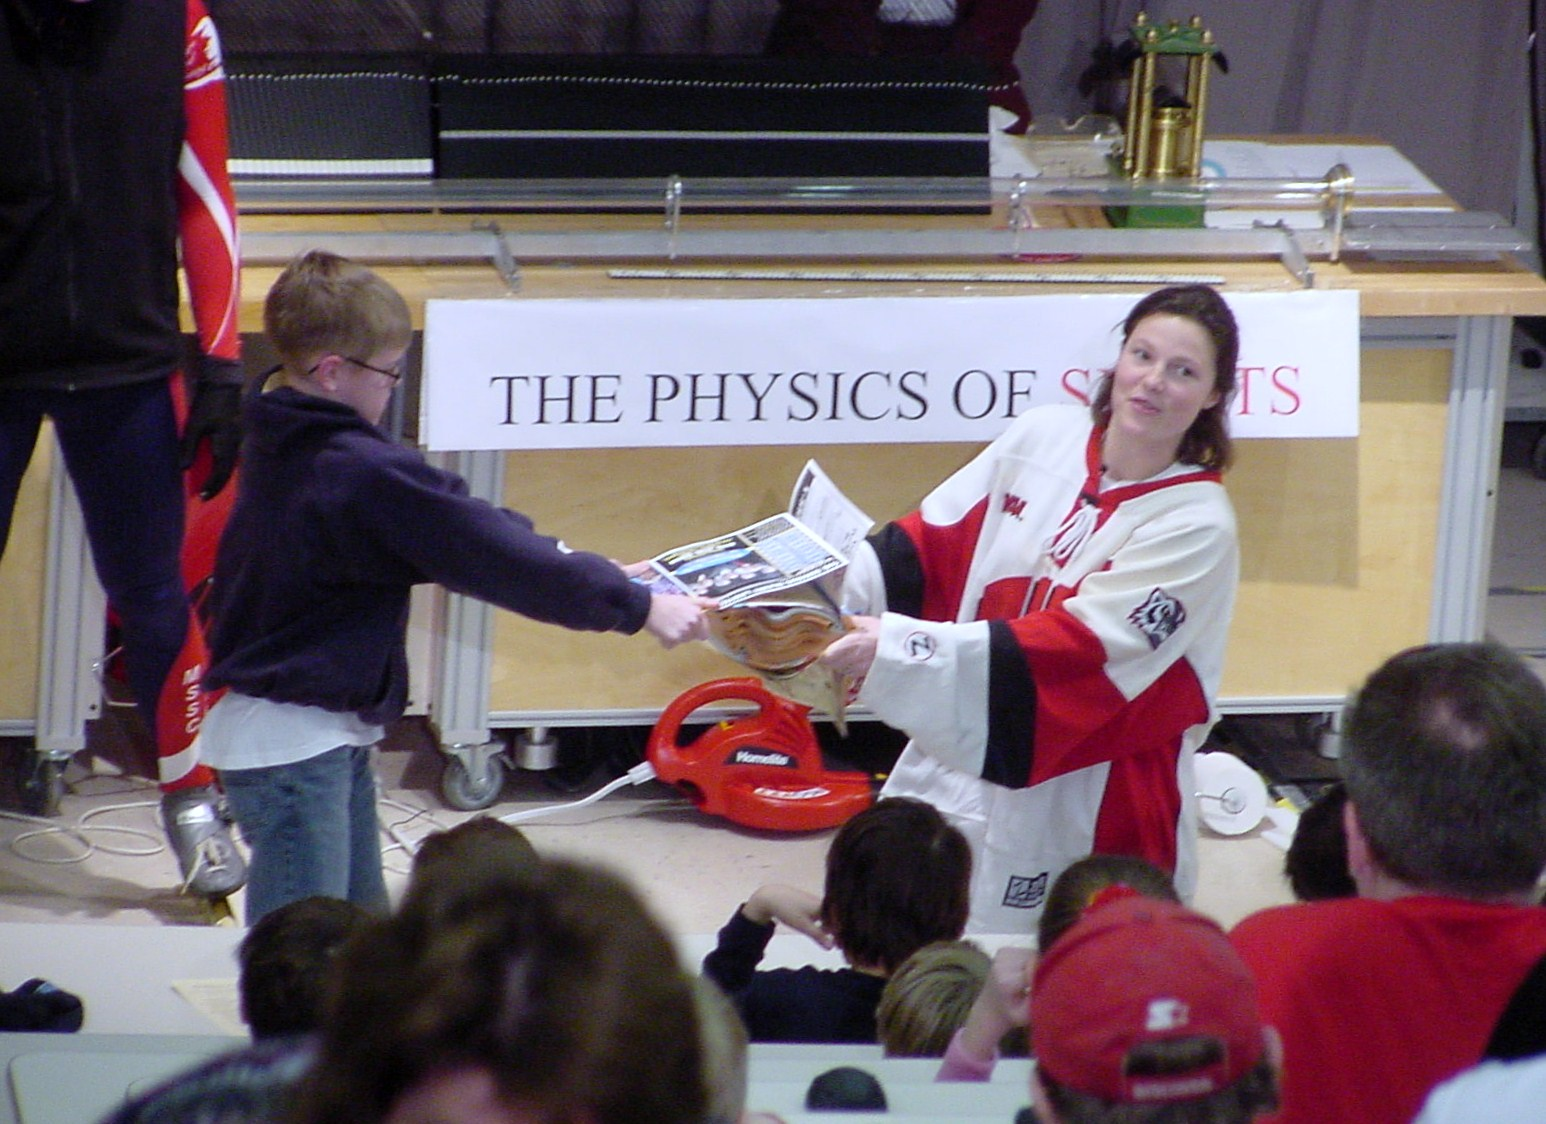 Boy and Girl pull on a book on stage